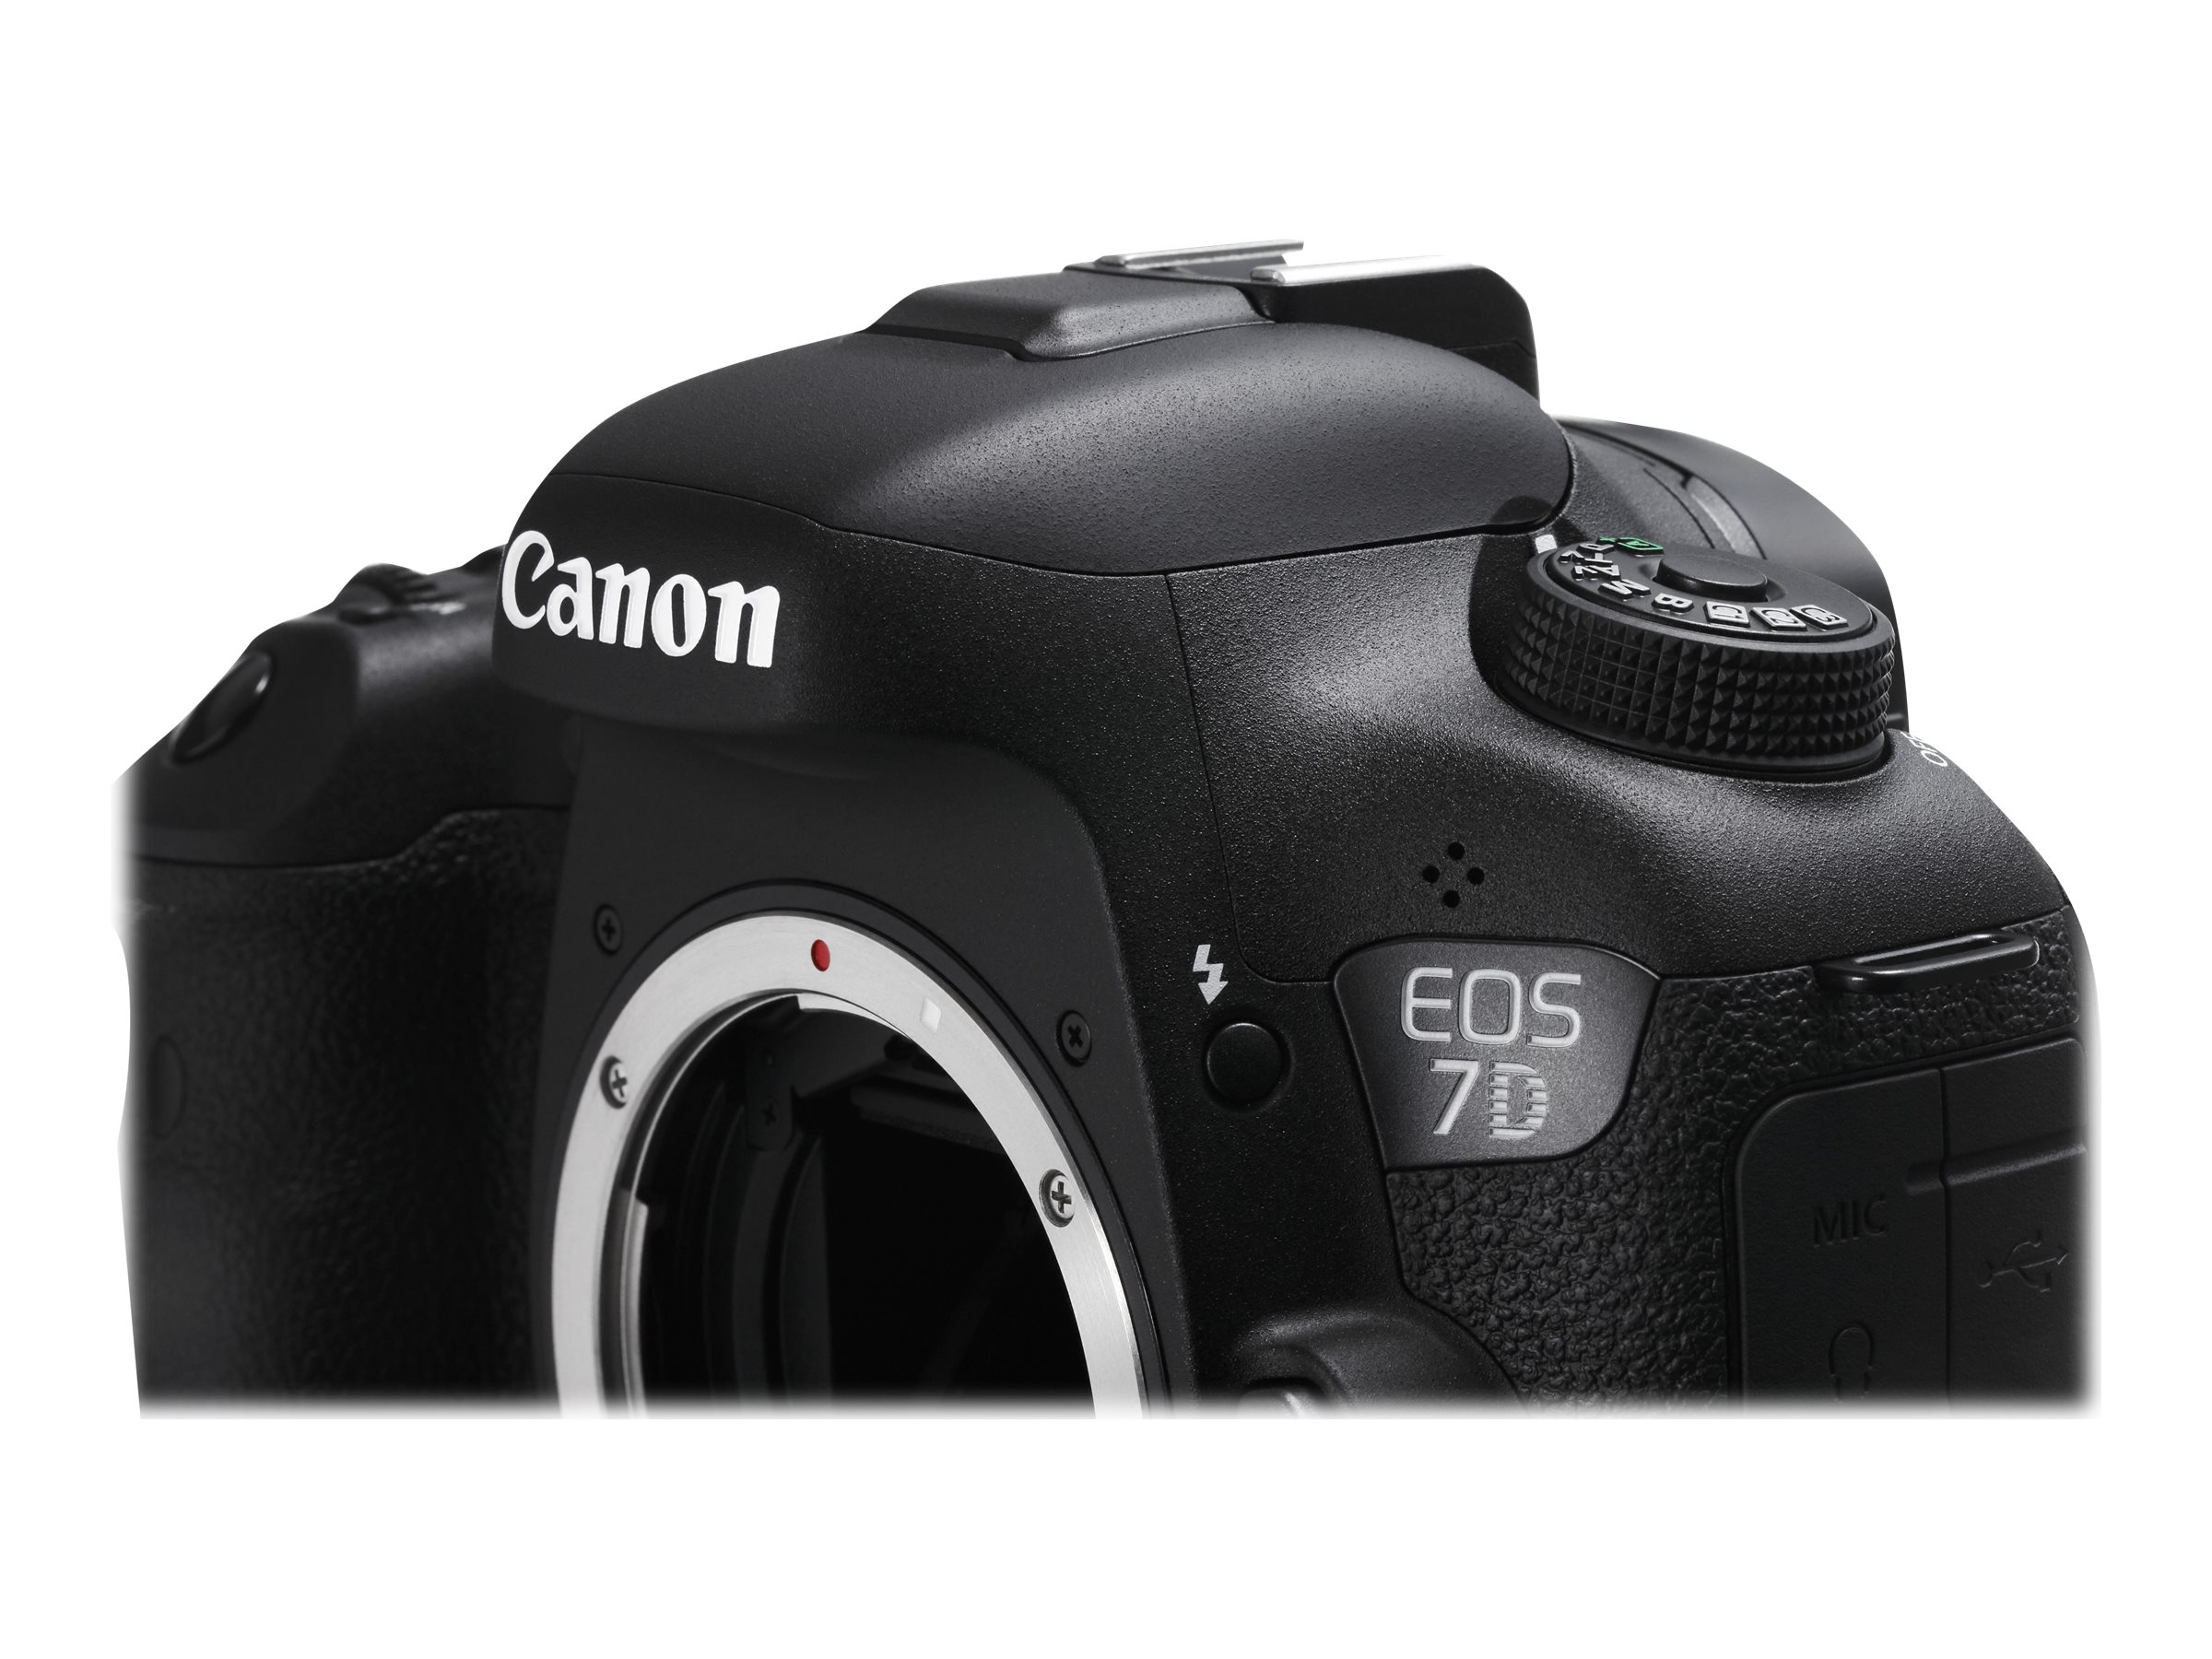 Canon EOS 7D Mark II DSLR Camera, 20.2MP, Black (Body Only), 9128B002